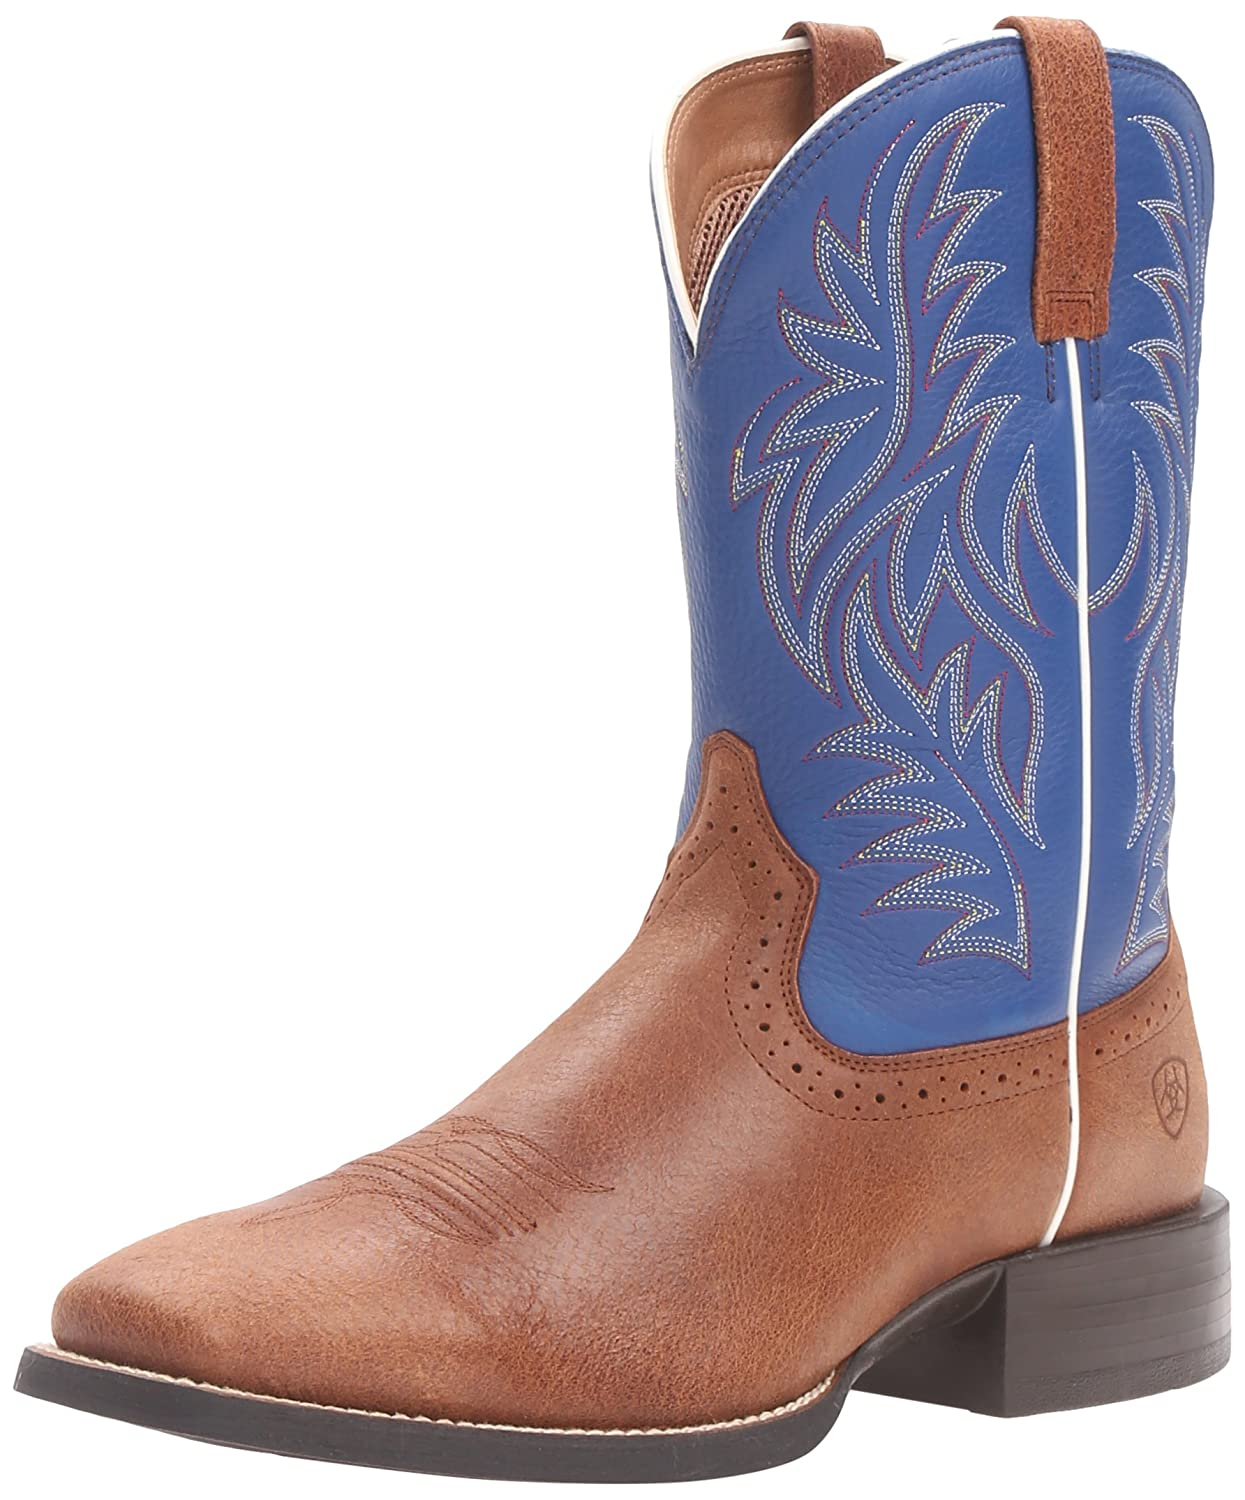 Ariat メンズ Red Angus Brown/Royal 8.5 D(M) US 8.5 D(M) USRed Angus Brown/Royal B01BM7MWMI